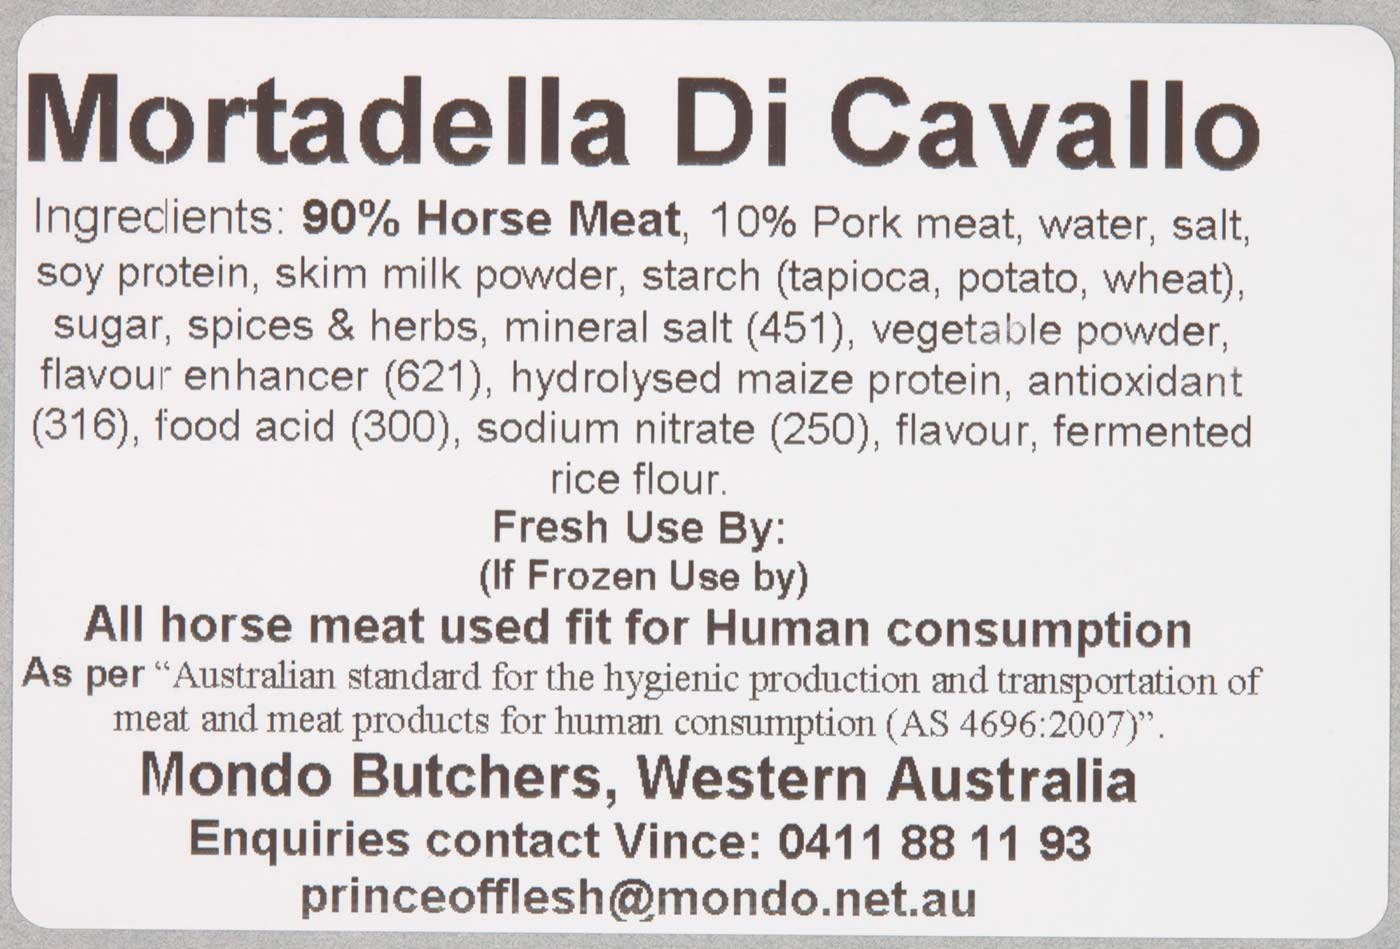 Printed label for 'Mortadella Di Cavallo' with a list of ingredients including 90% horse meat.